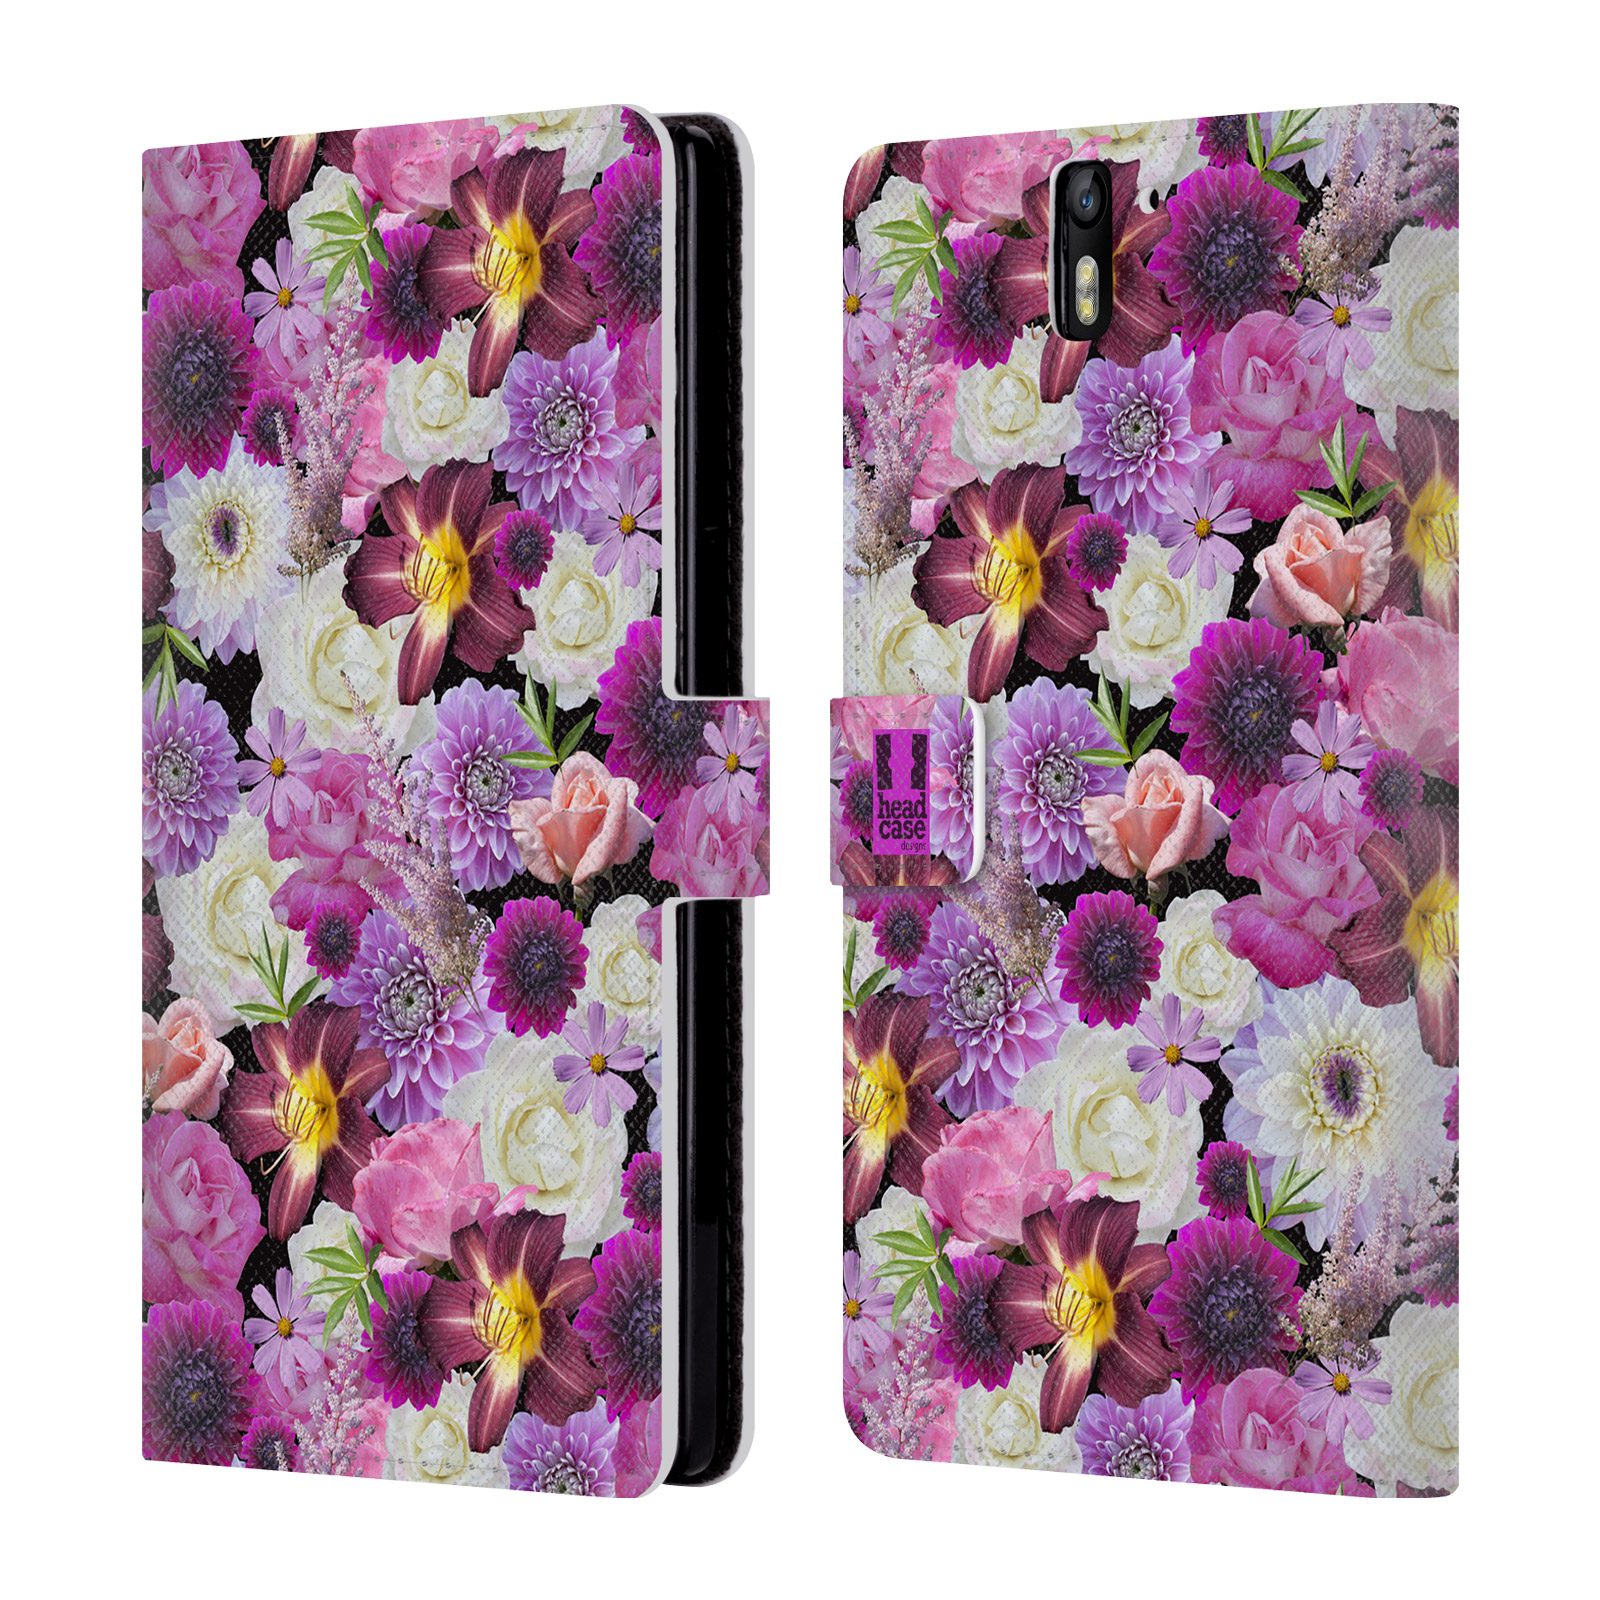 Book Cover Design With Flowers : Head case designs flowers leather book wallet cover